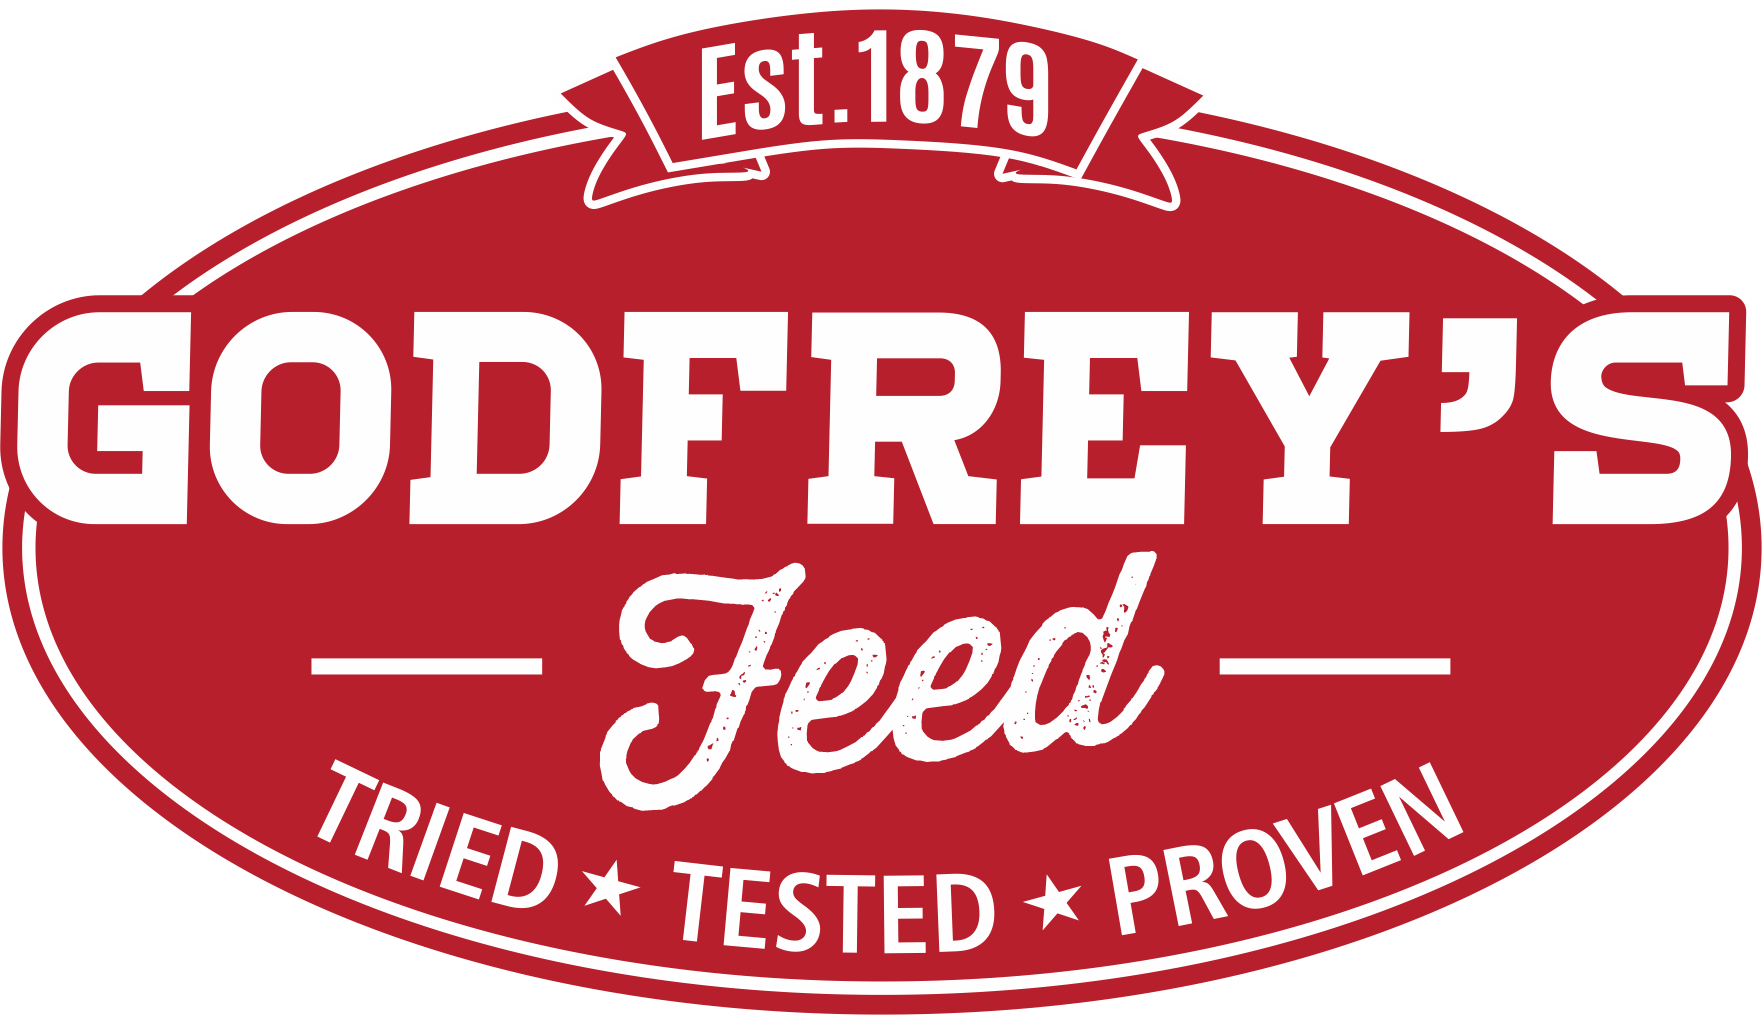 Godfrey's Feed